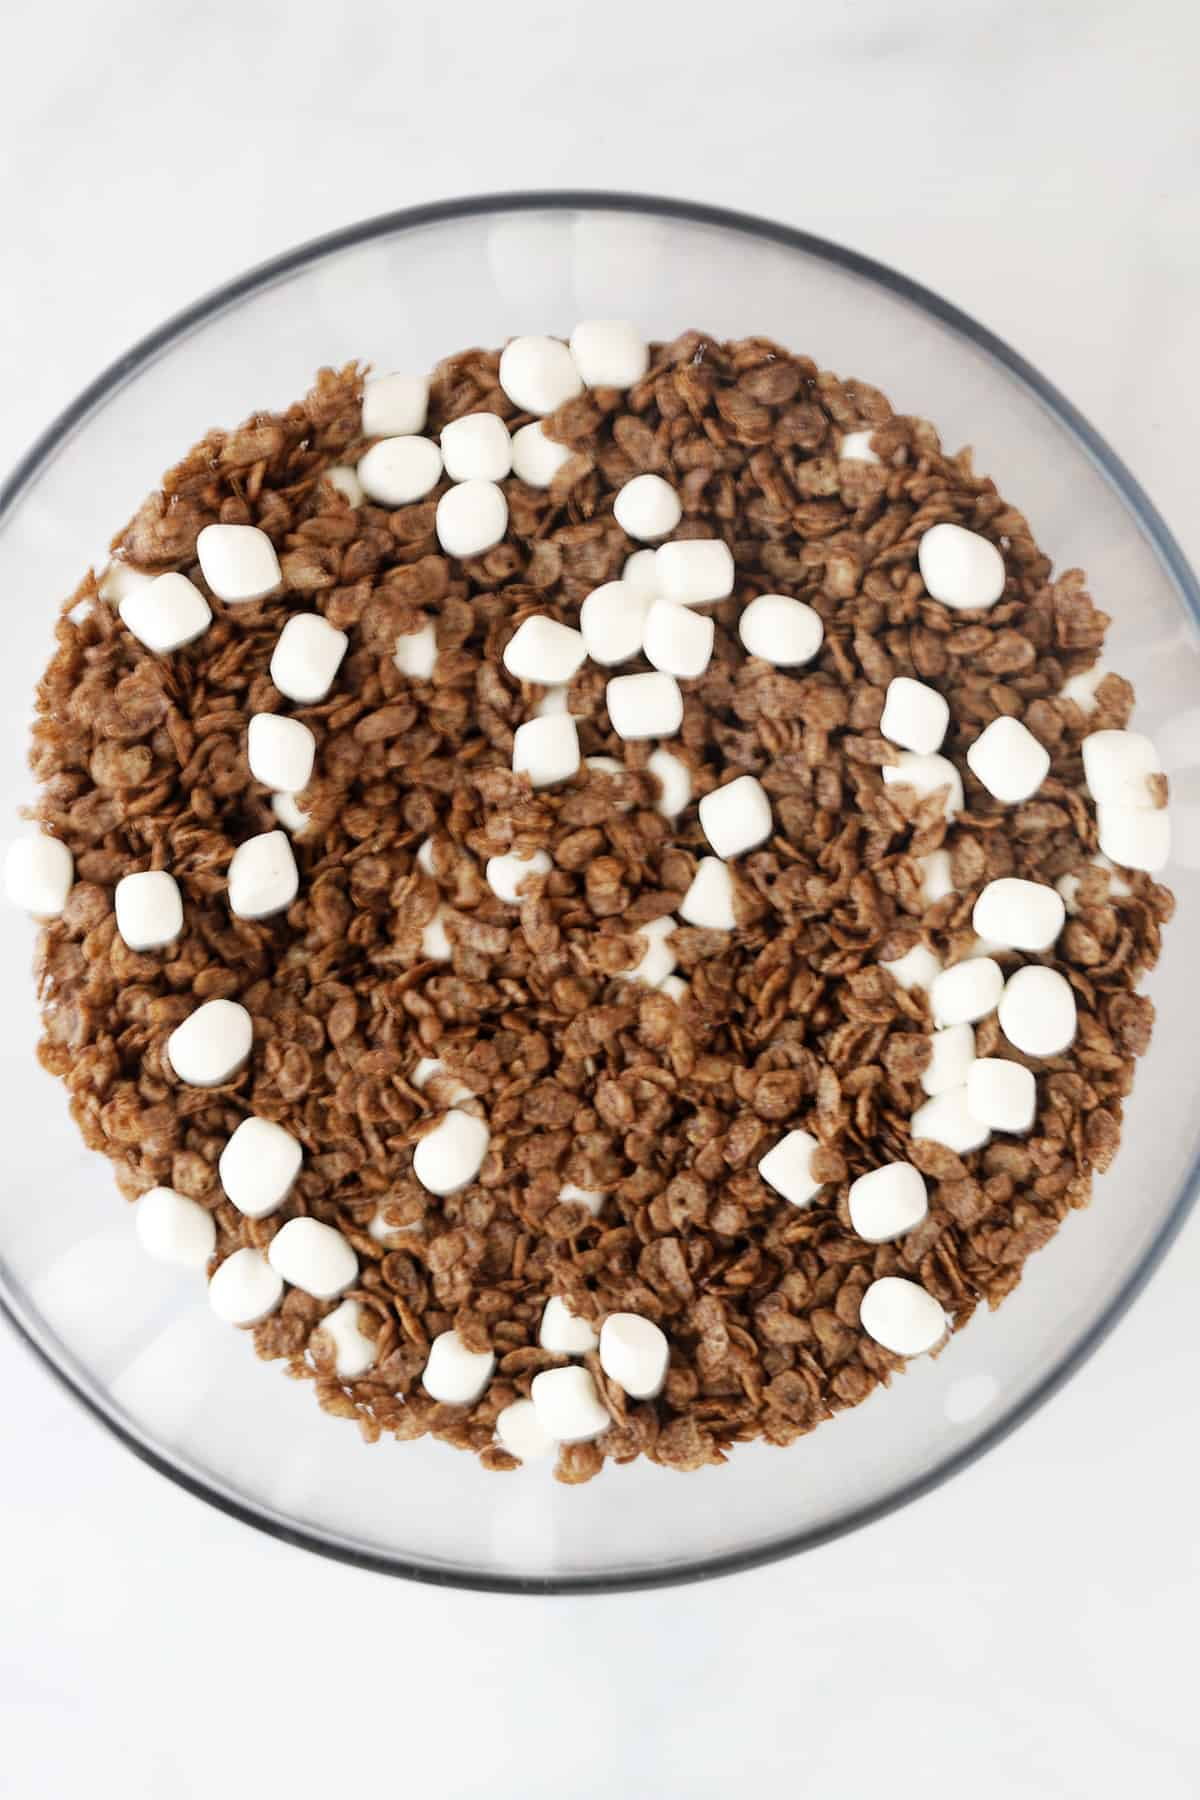 A glass bowl full of Cocoa Rice Krispies and mini marshmallows.